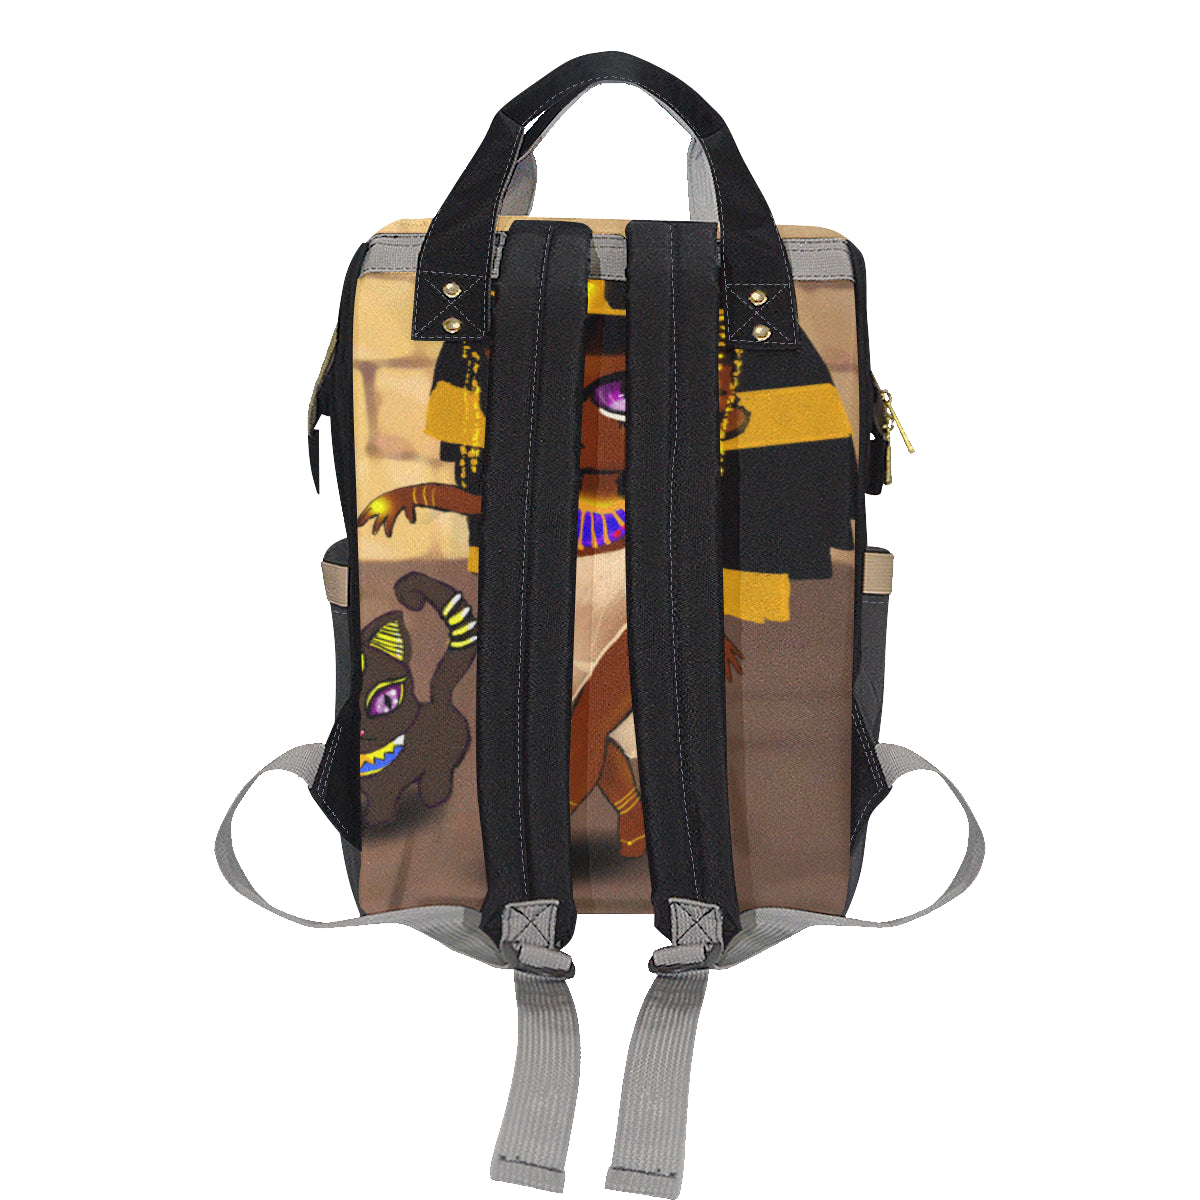 Cleopatra Multi-Function Diaper Backpack